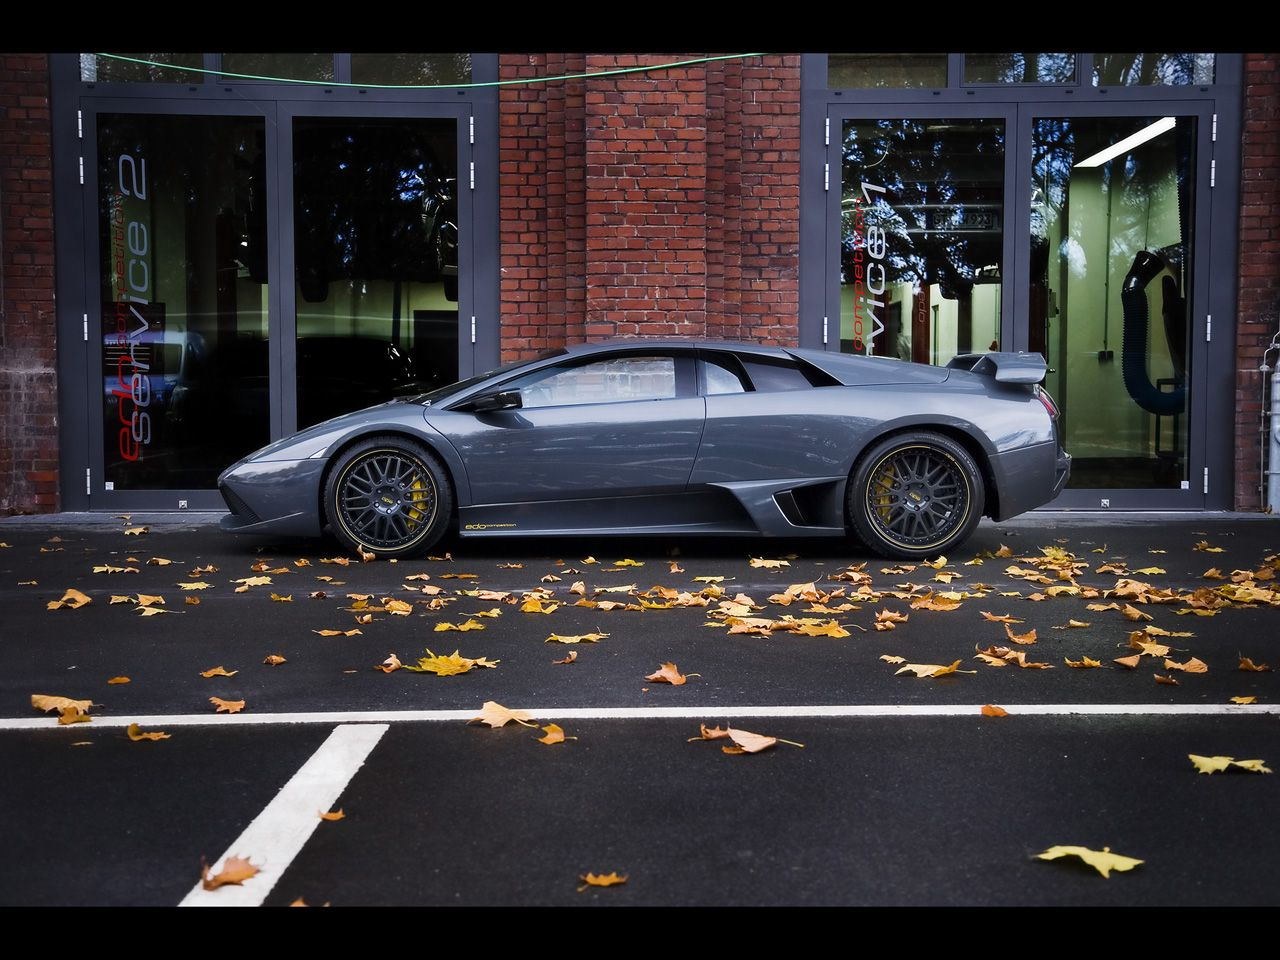 Murcielago Lp640 Competition Left Side View Wallpaper 1280x960